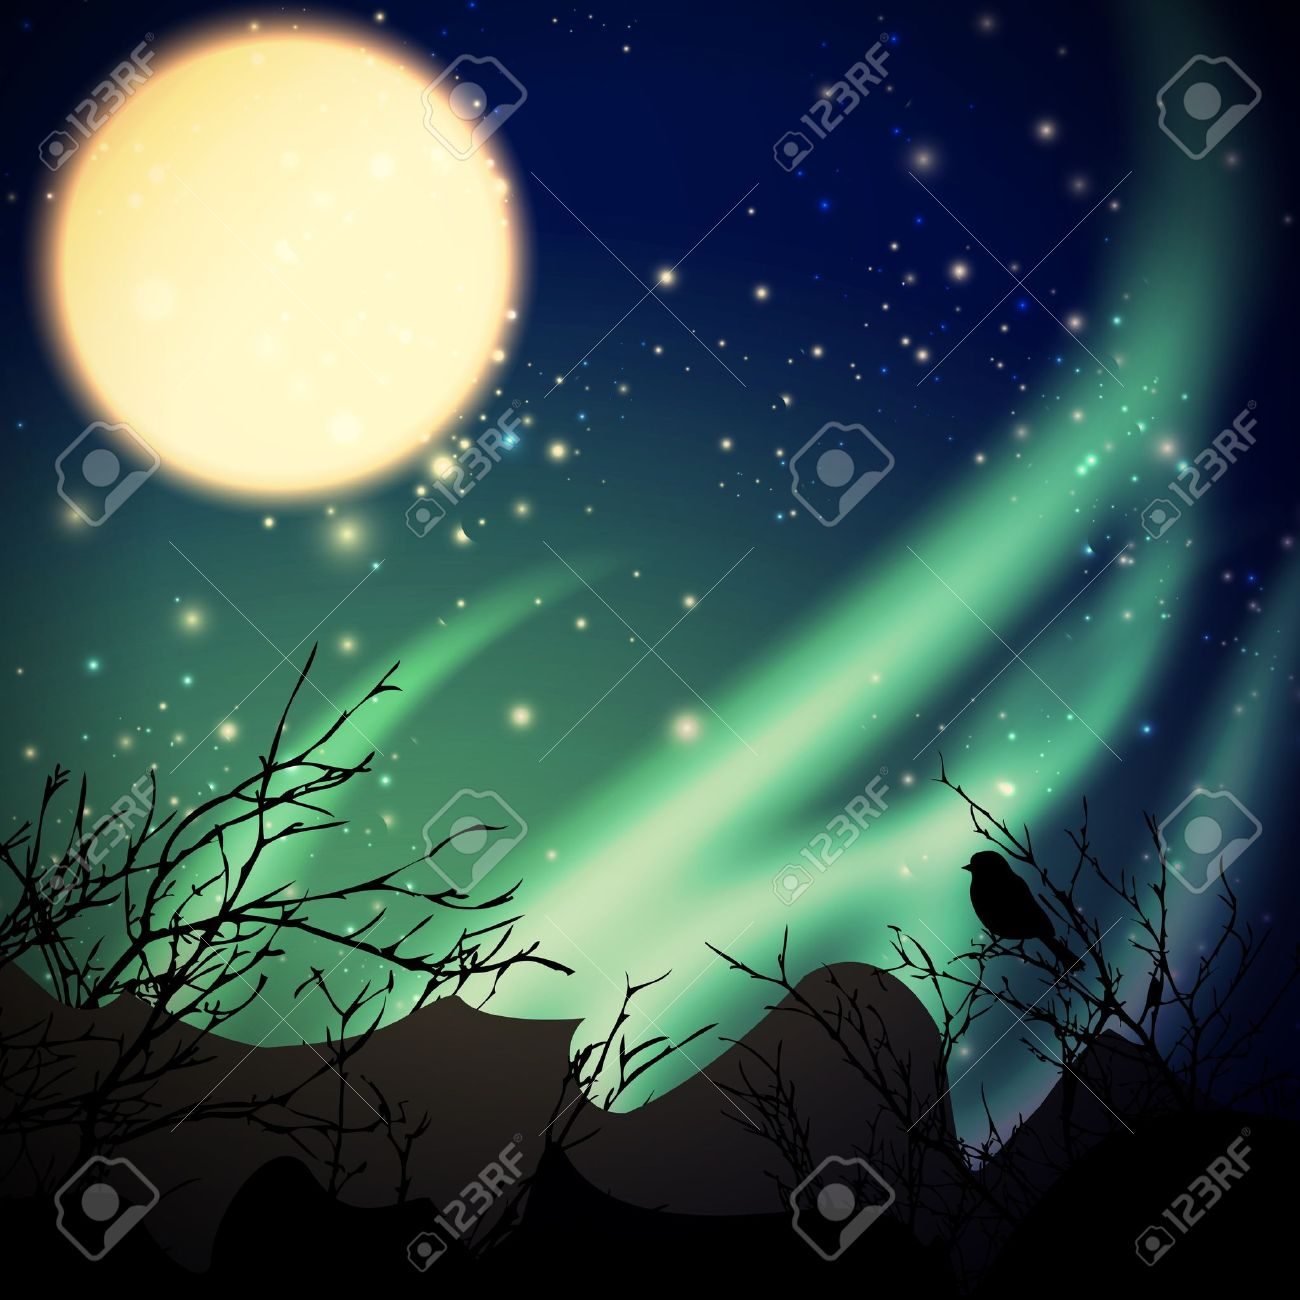 night with northern lights and moon - 13513977